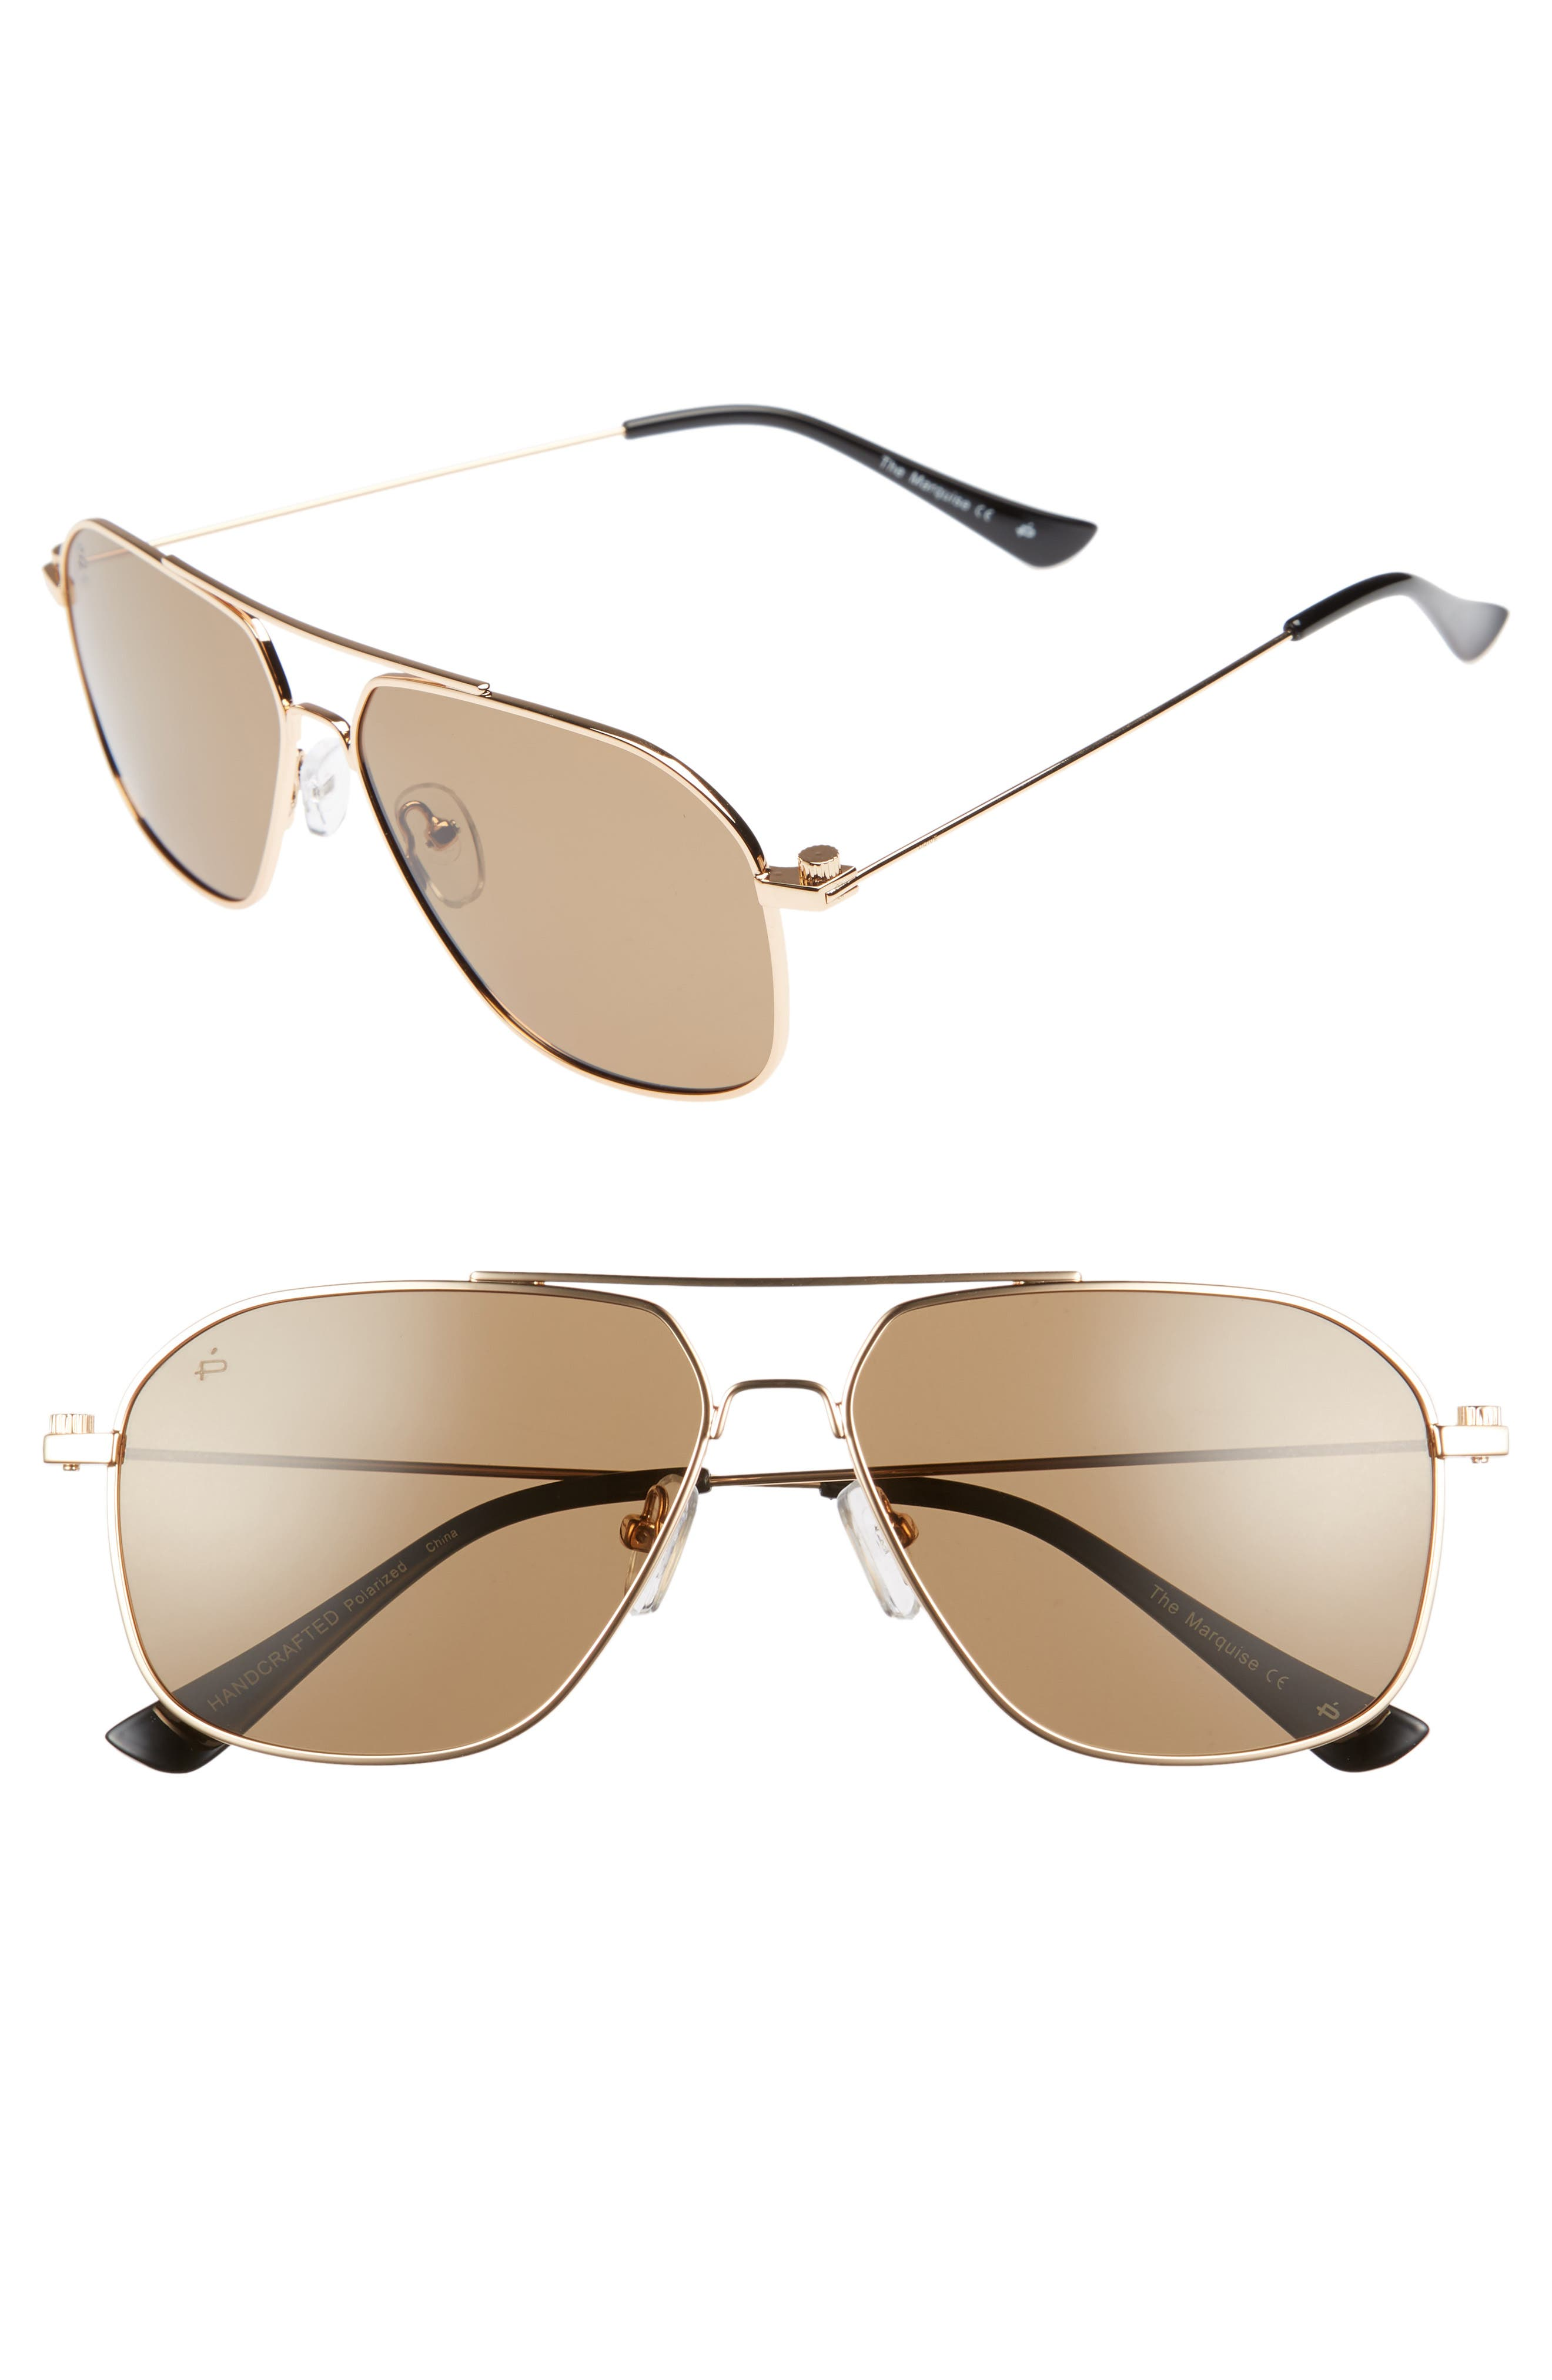 Privé Revaux The Marquise 58mm Aviator Sunglasses,                         Main,                         color, Metal/ Gold